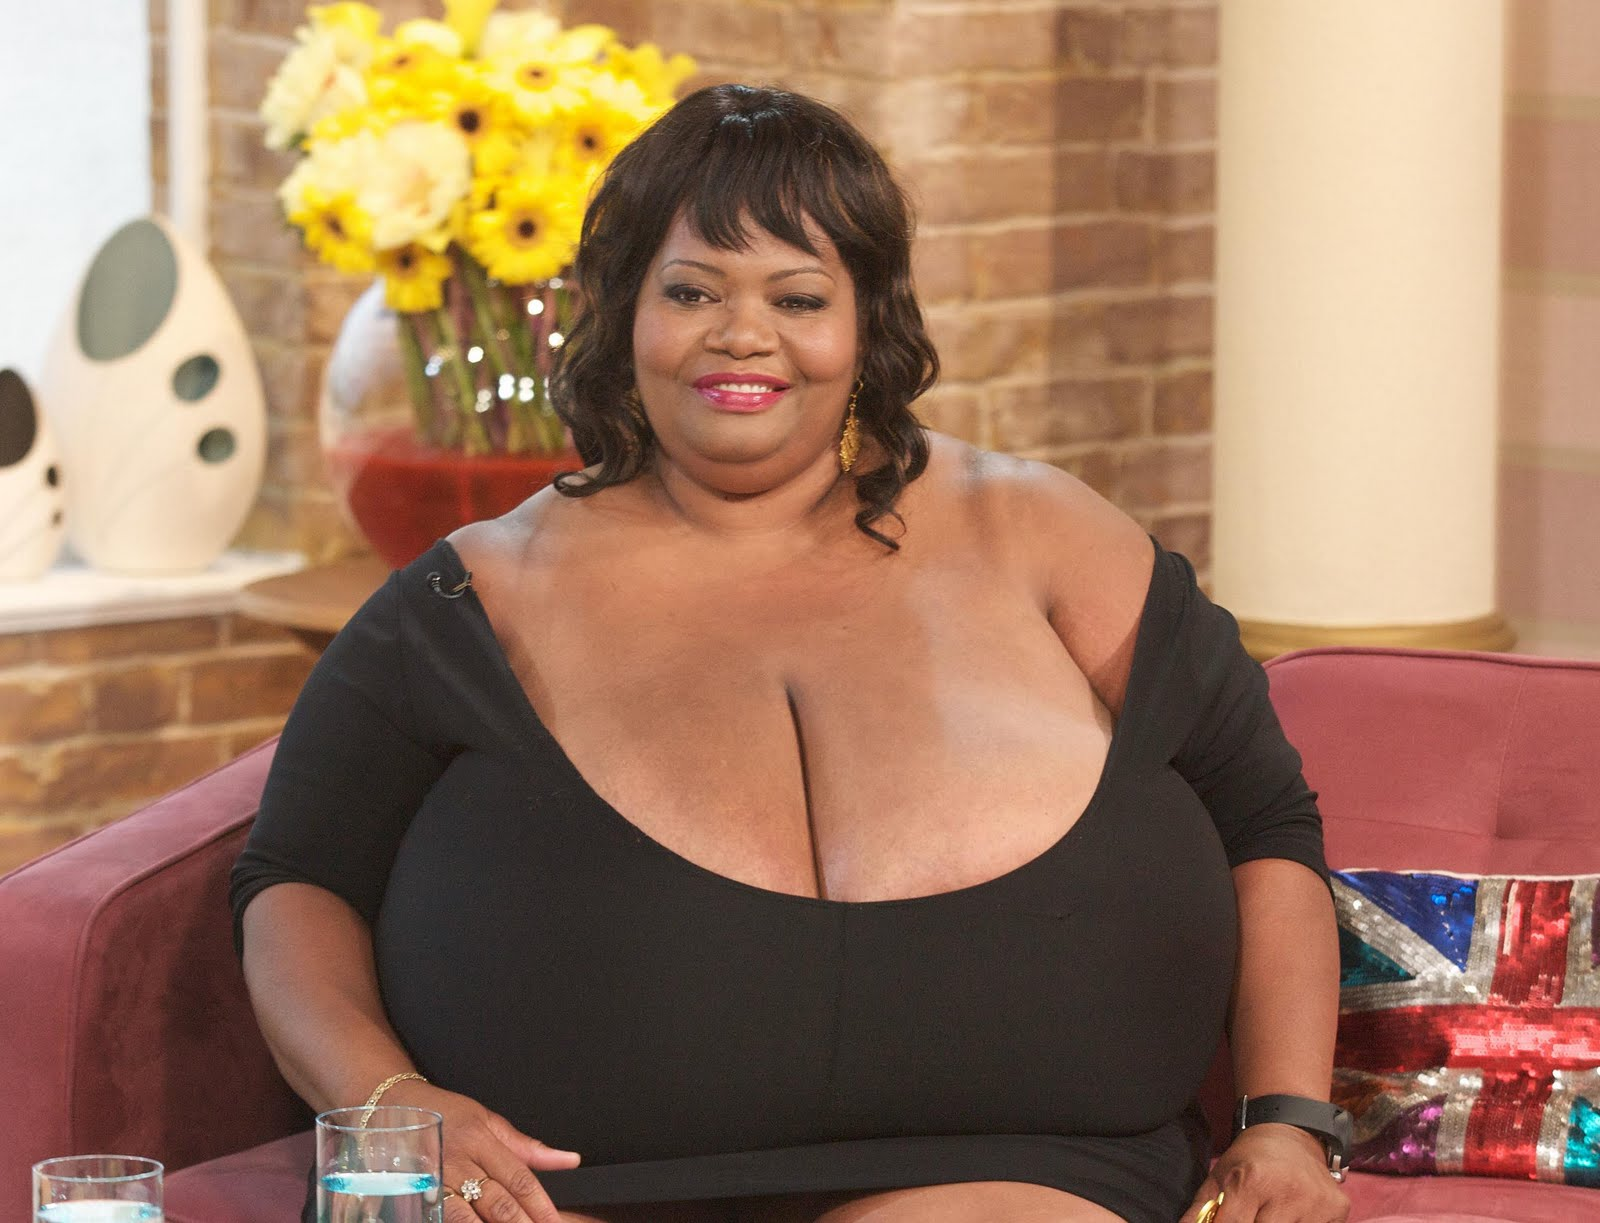 http://2.bp.blogspot.com/-dPlJPE_nYLs/TgVT9zAc09I/AAAAAAAABw4/eIAui_OIAKI/s1600/woman_with_worlds_largest_natural_breasts.jpg